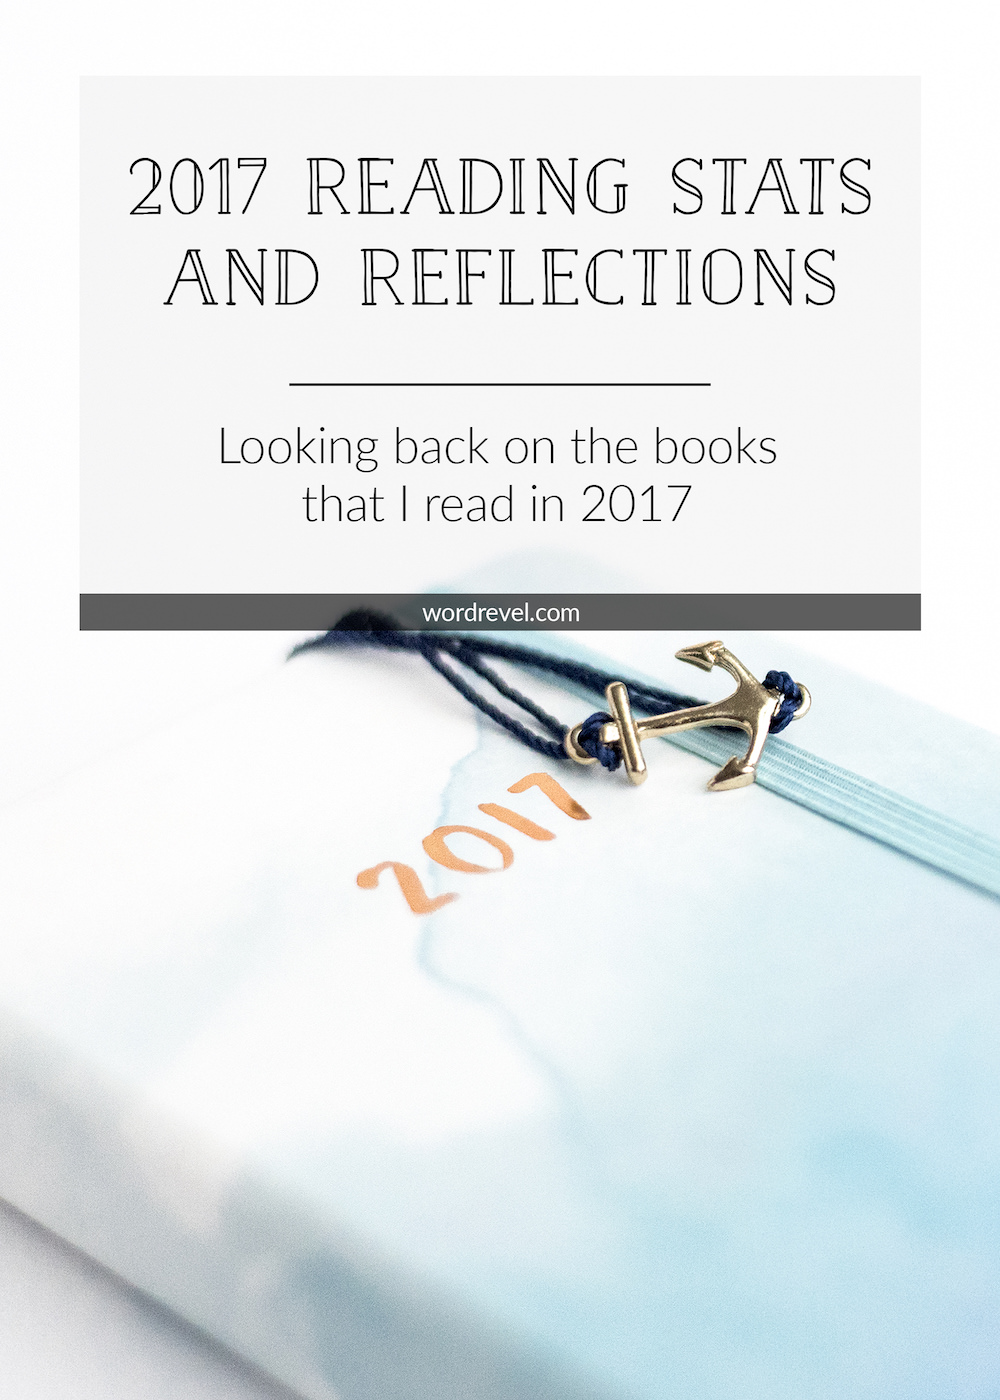 2017 Reading Stats and Reflections — Looking back on the books that I read in 2017